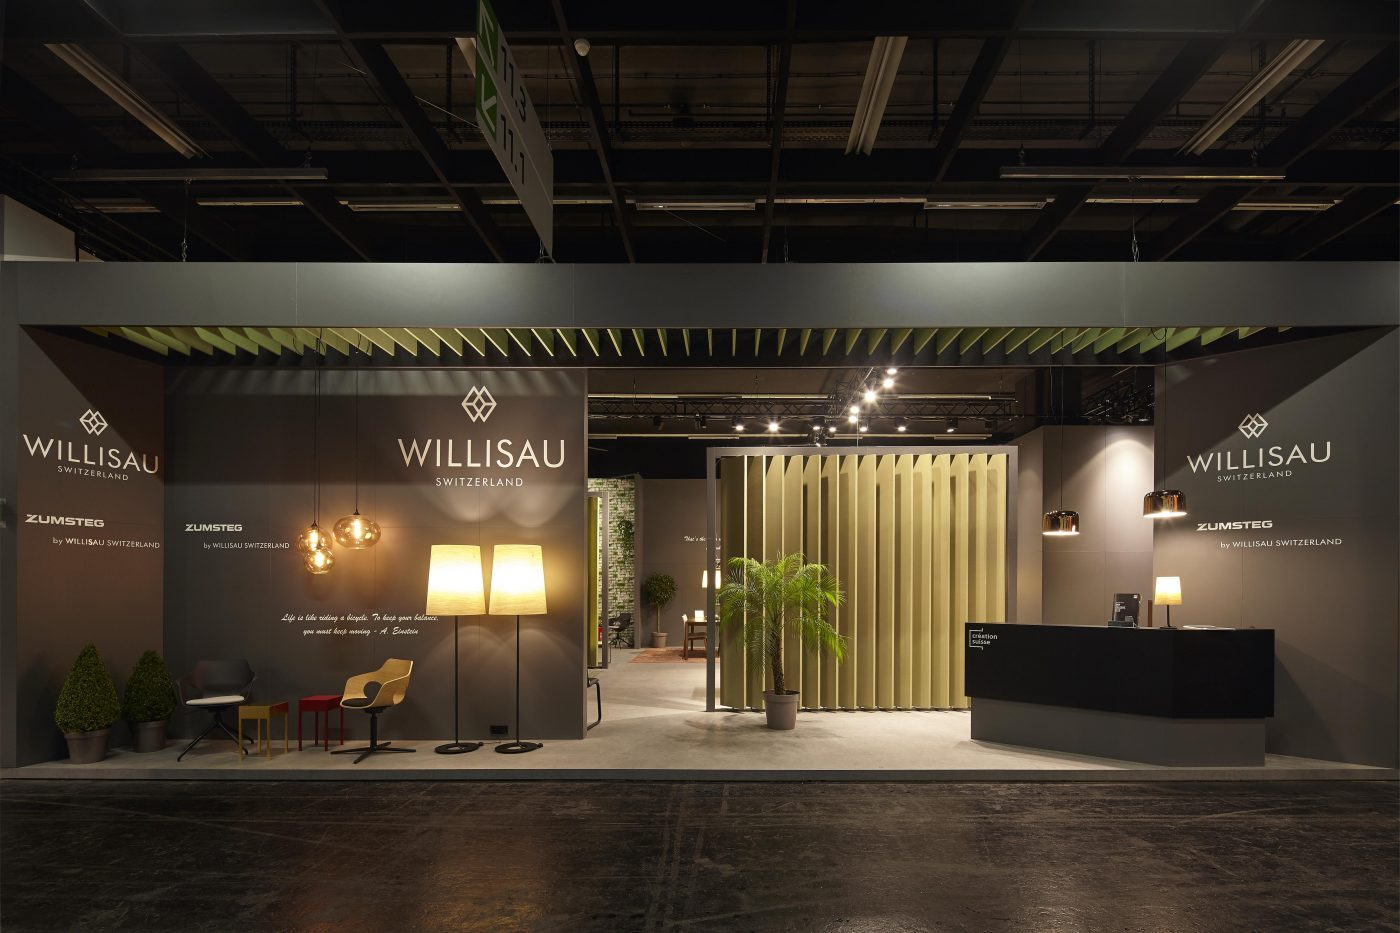 Willisau Messestand Immcologne2019 4